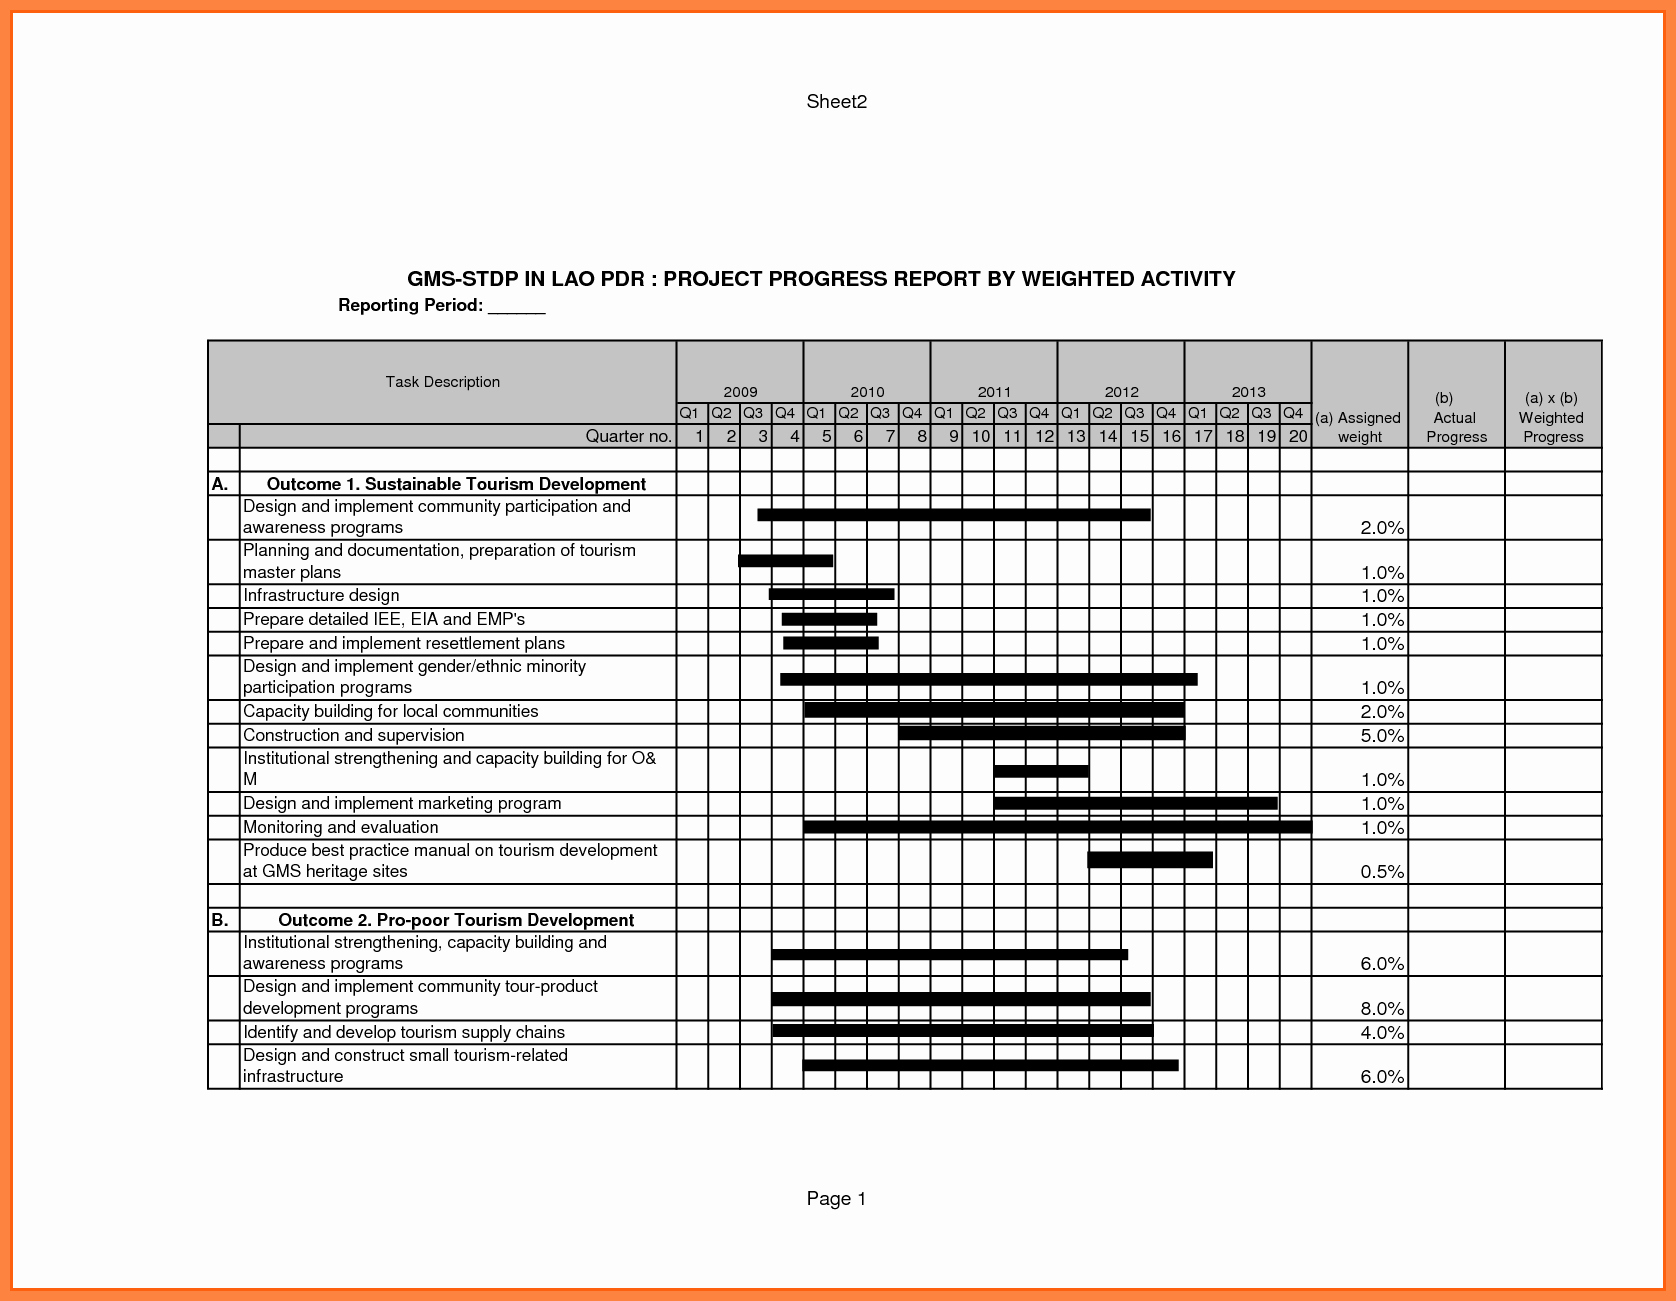 Construction Project Progress Report Template E   Radiofama Eu Throughout Progress Report Template For Construction Project